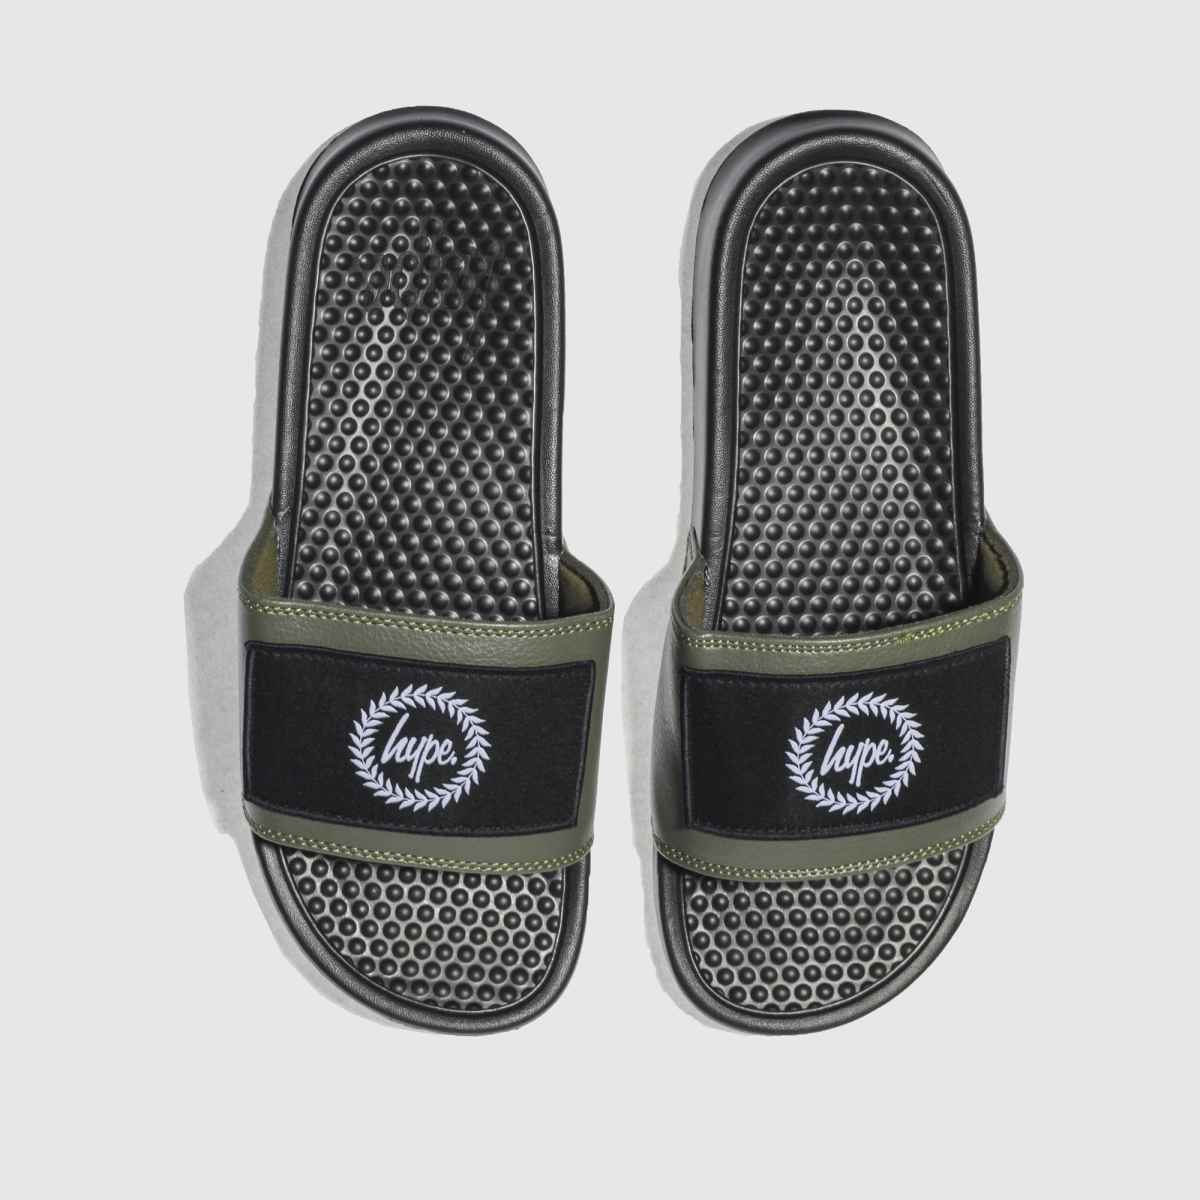 Hype Khaki Insignia Slider Sandals